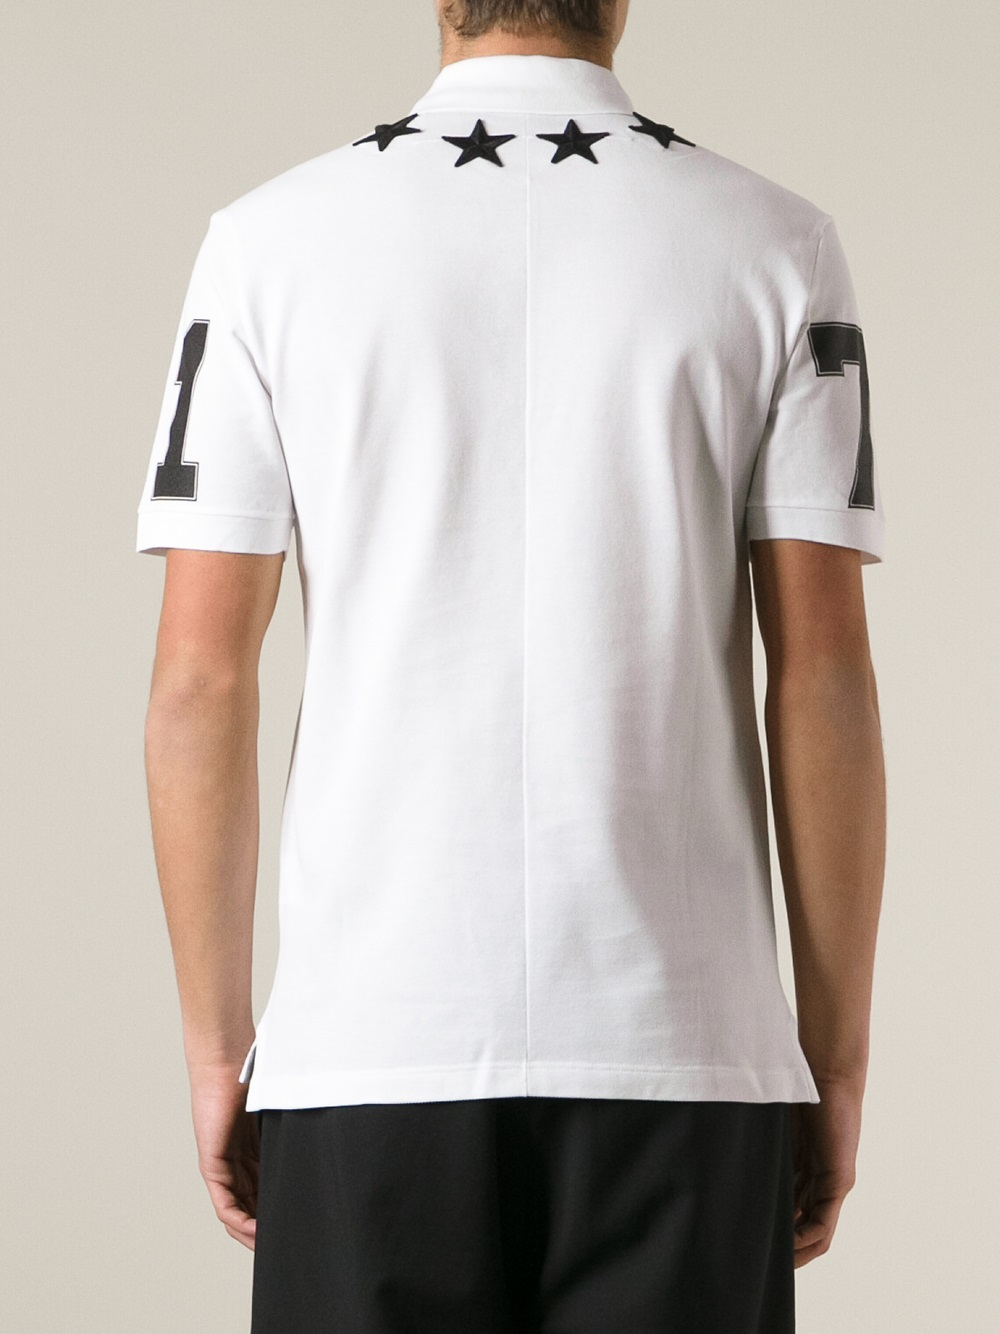 Lyst givenchy star patch polo shirt in white for men for Givenchy 5 star shirt